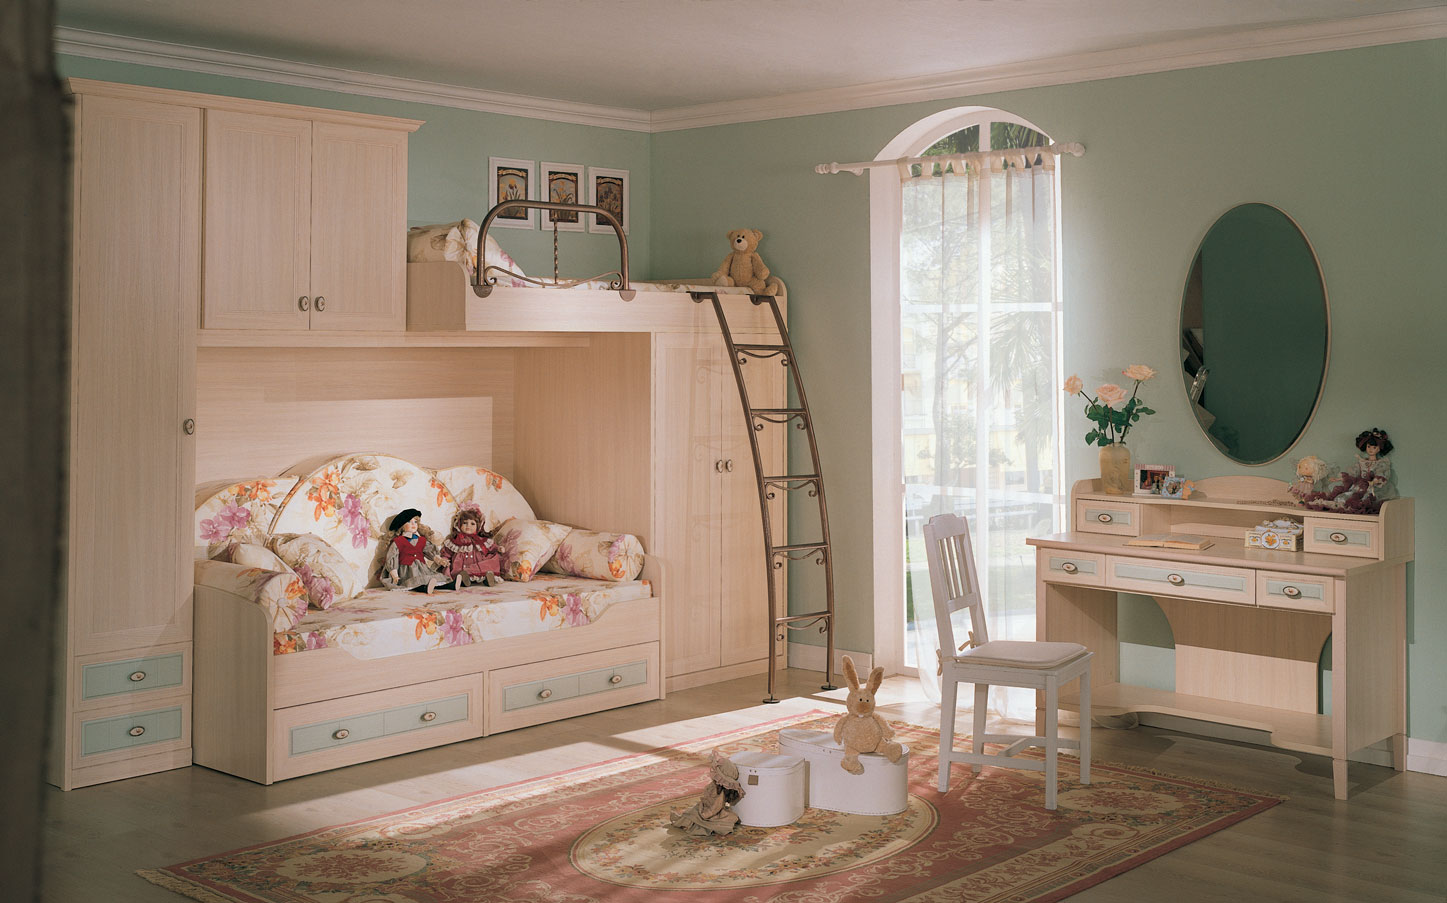 Magnificent Kids Room Designs for Girls 1447 x 903 · 211 kB · jpeg